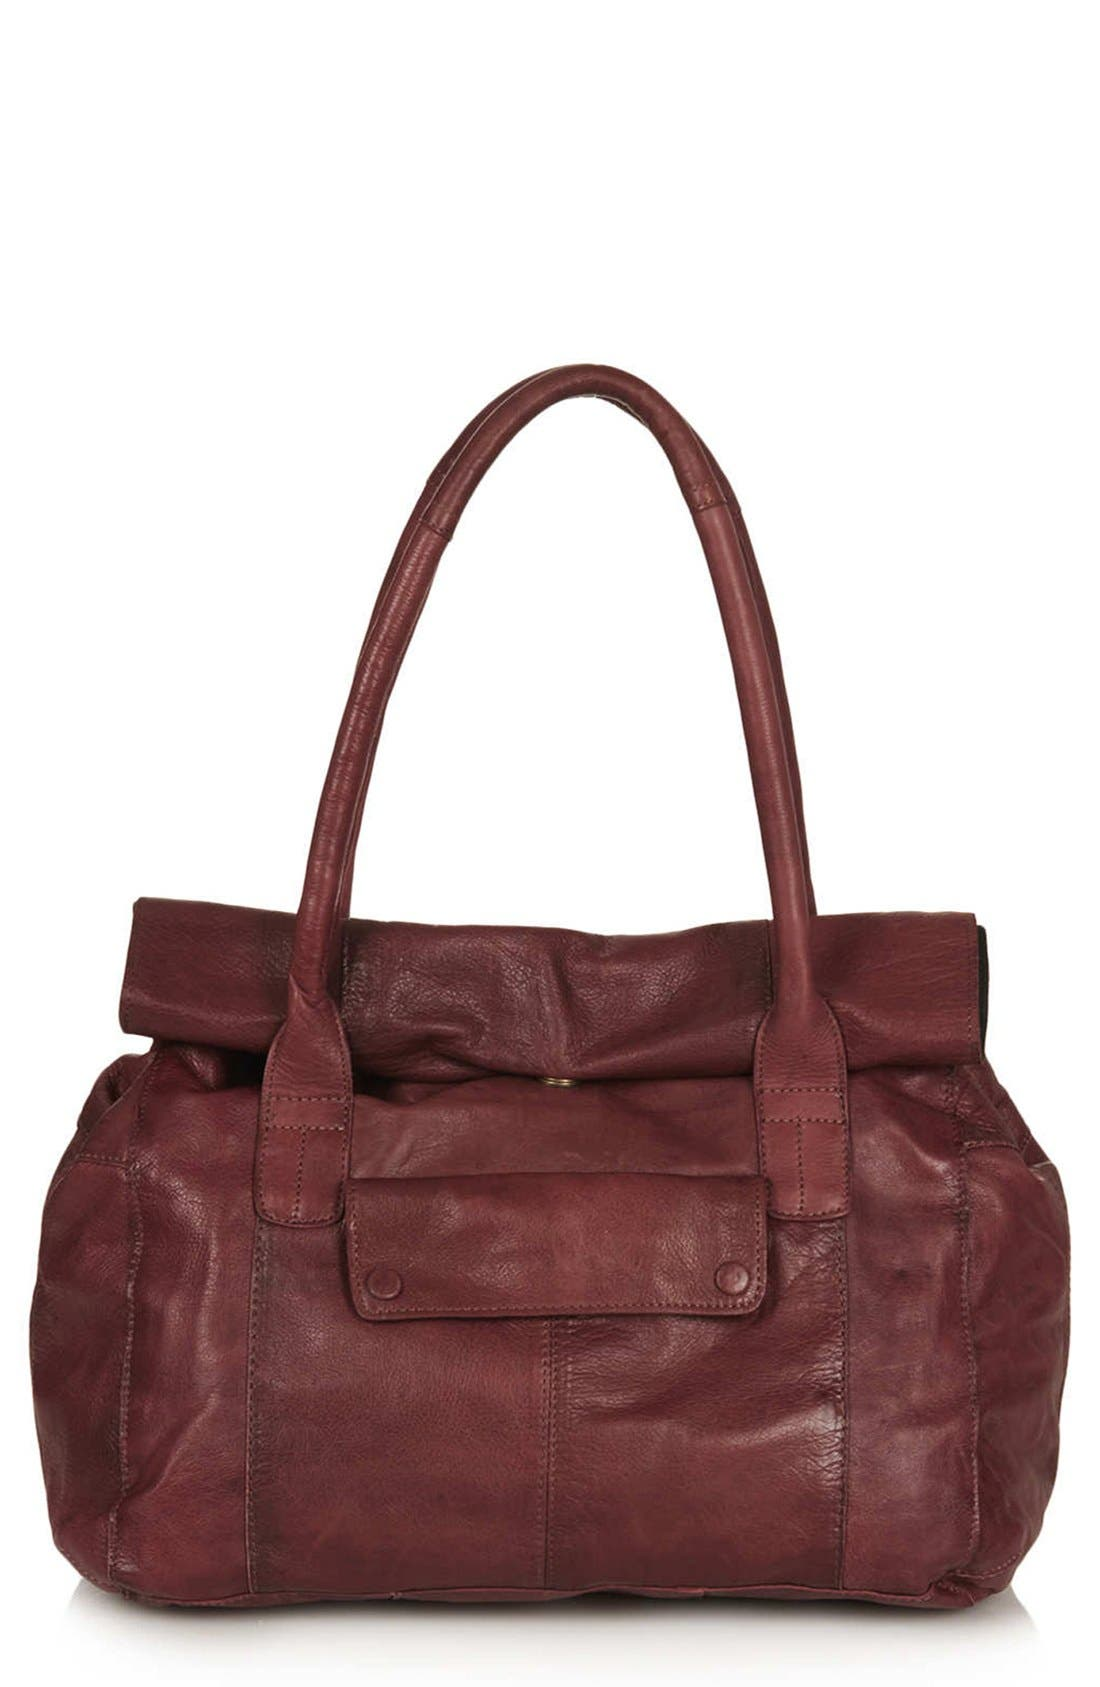 Main Image - Topshop Roll Top Leather Tote Bag